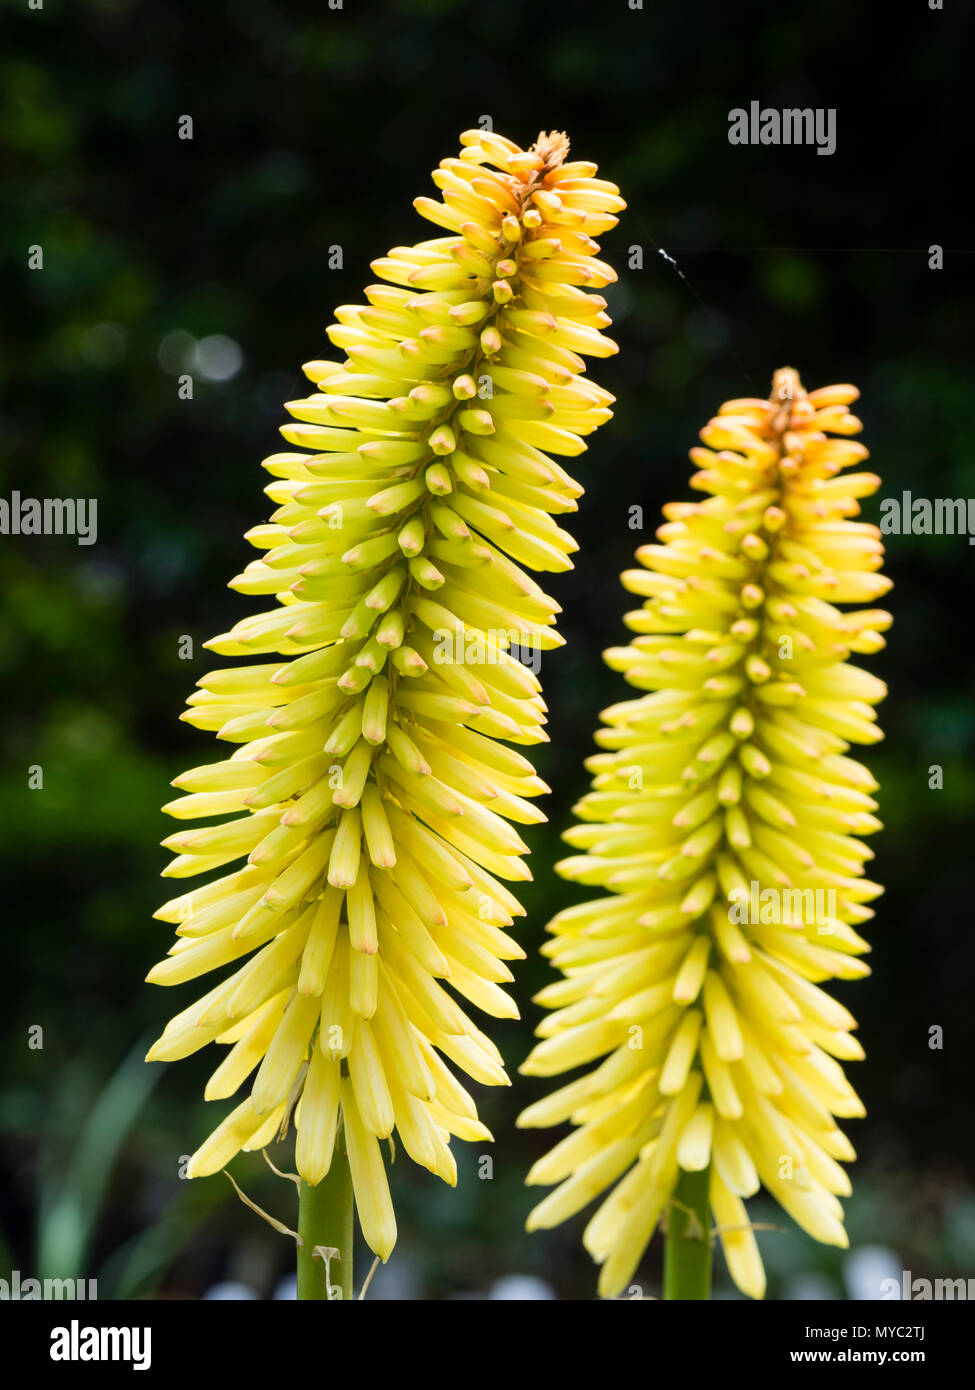 Large,developing spike with greenish yellow flower buds of the upright, summer flowering torch lily, Kniphofia 'Moonstone' - Stock Image